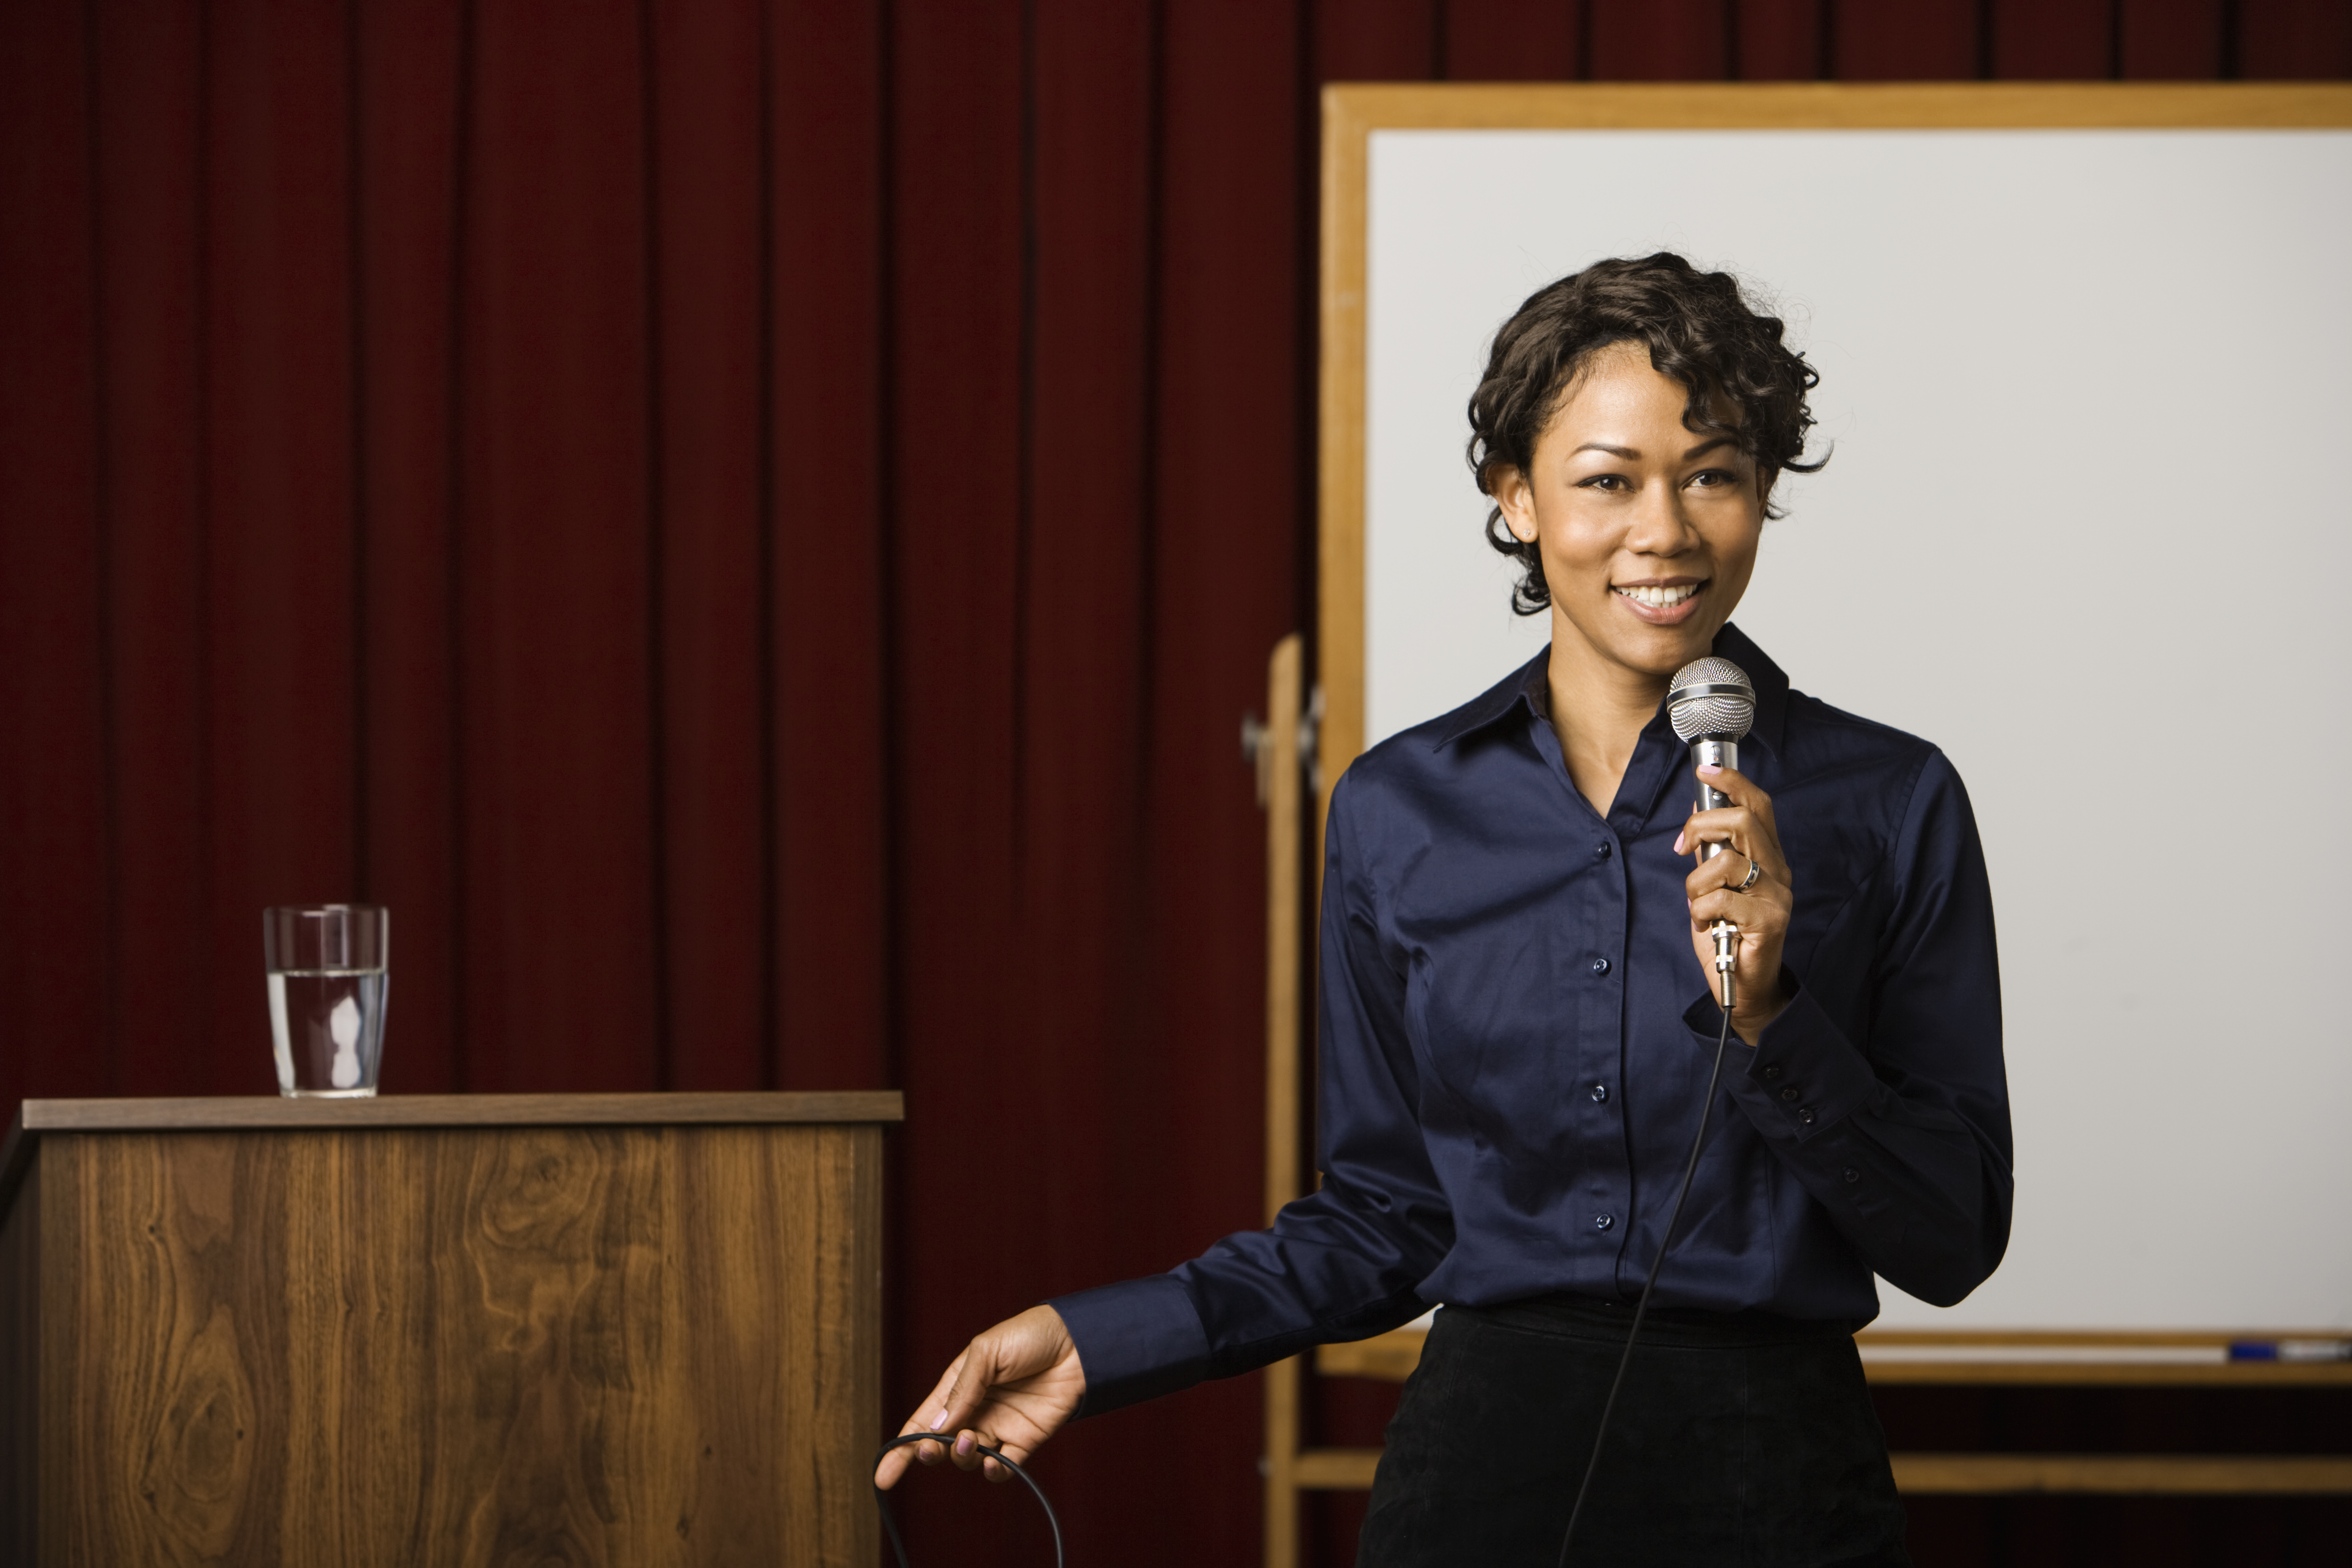 How to Greet an Audience When Giving a Speech | The Classroom